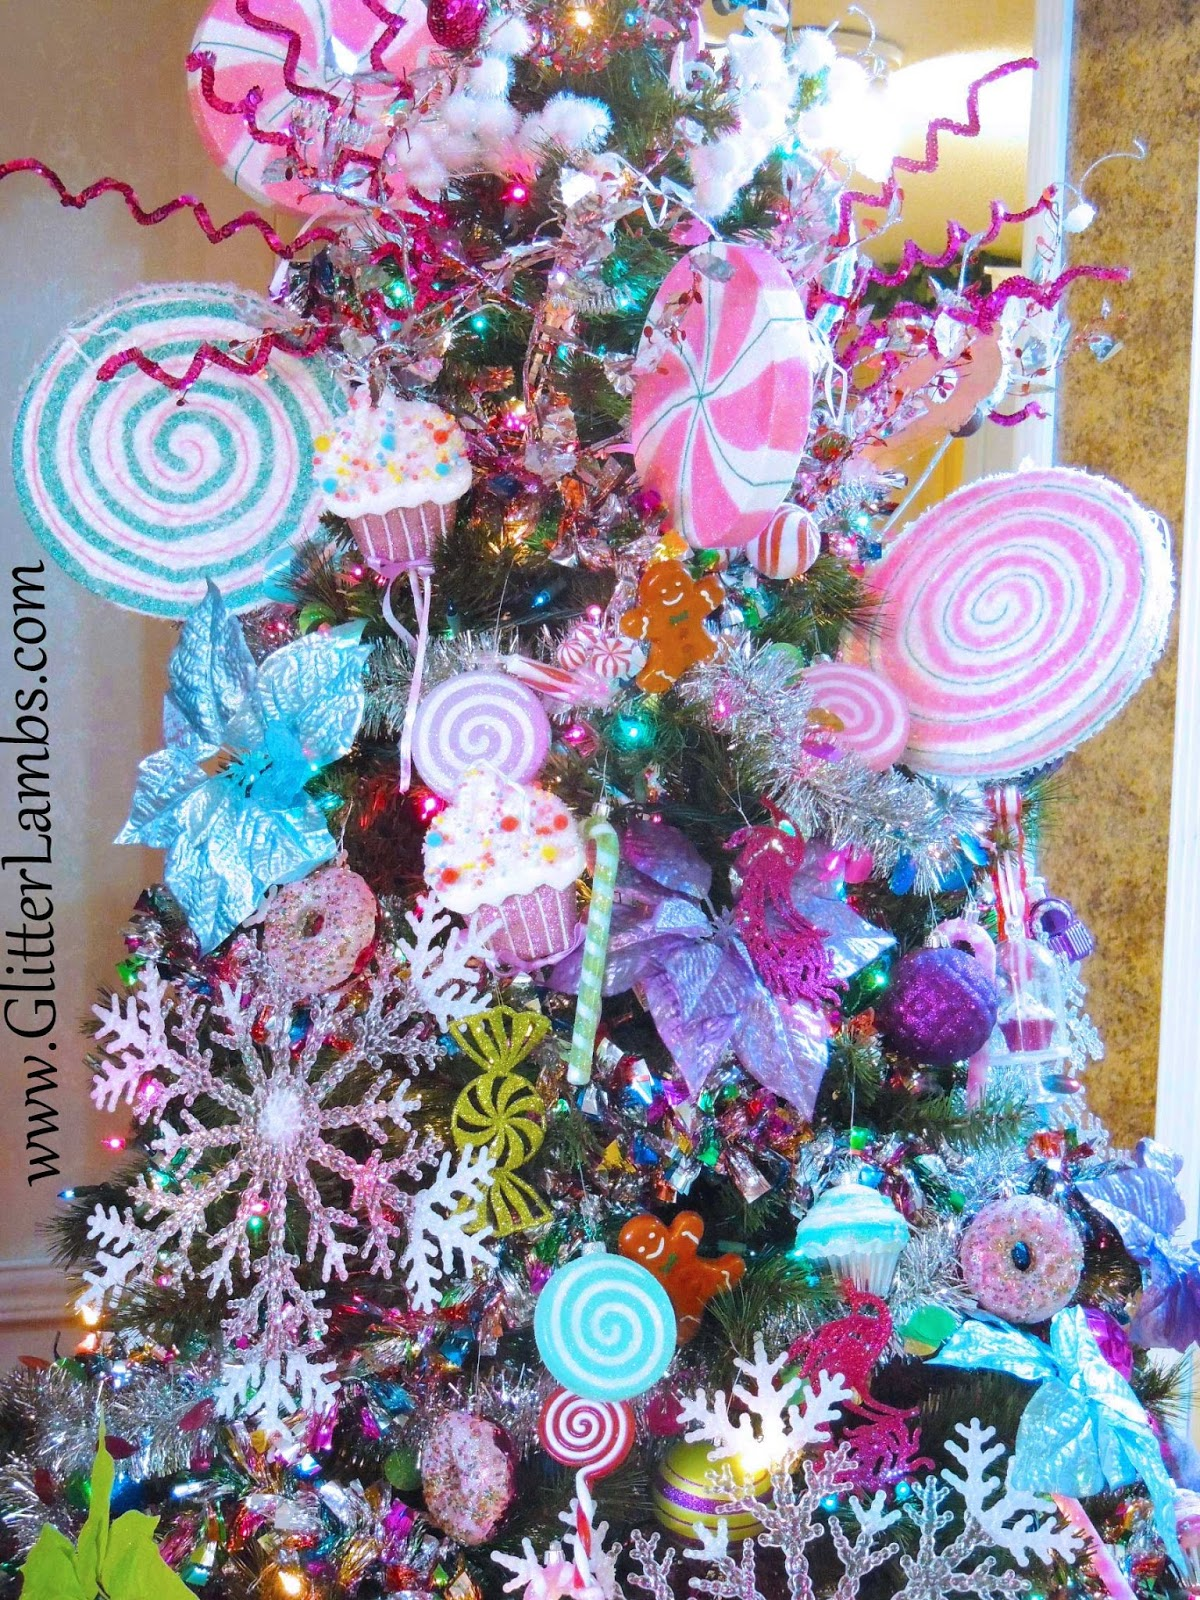 Candy Christmas Tree Decorations.Candyland Christmas Tree Candy Land Themed Christmas Tree